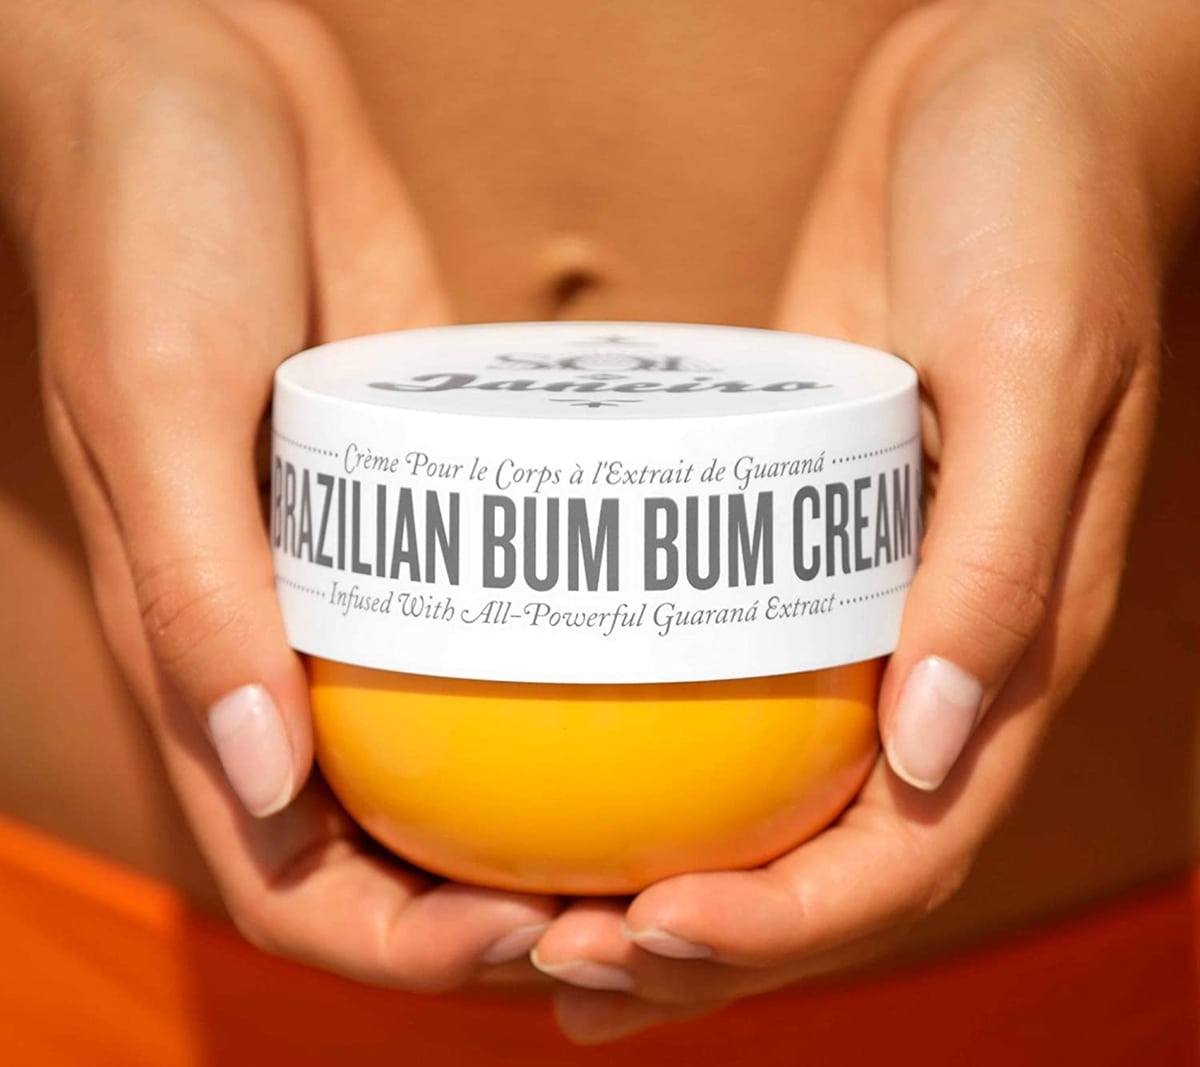 A fast-absorbing deliciously-scented body cream with a visibly tightening, smoothing formula that will make your skin feel wonderful